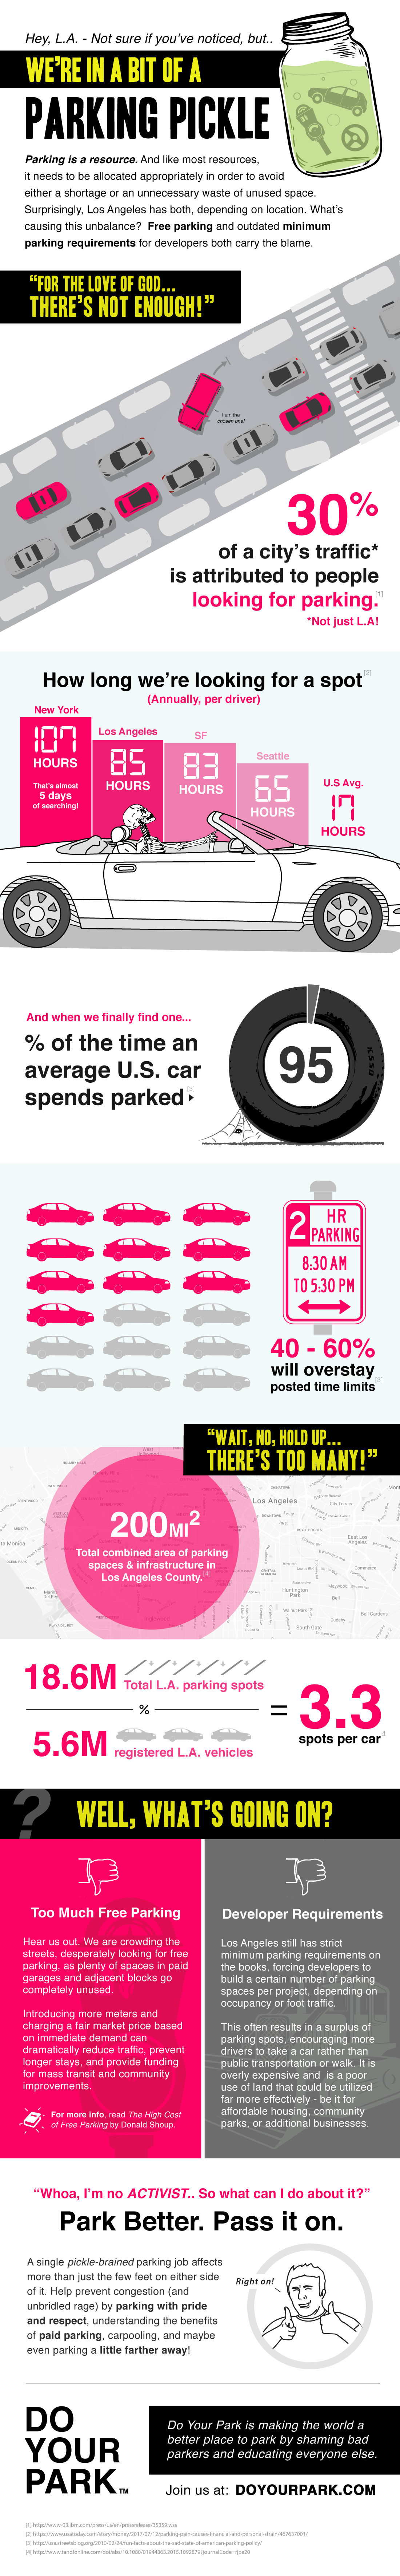 parking infographic